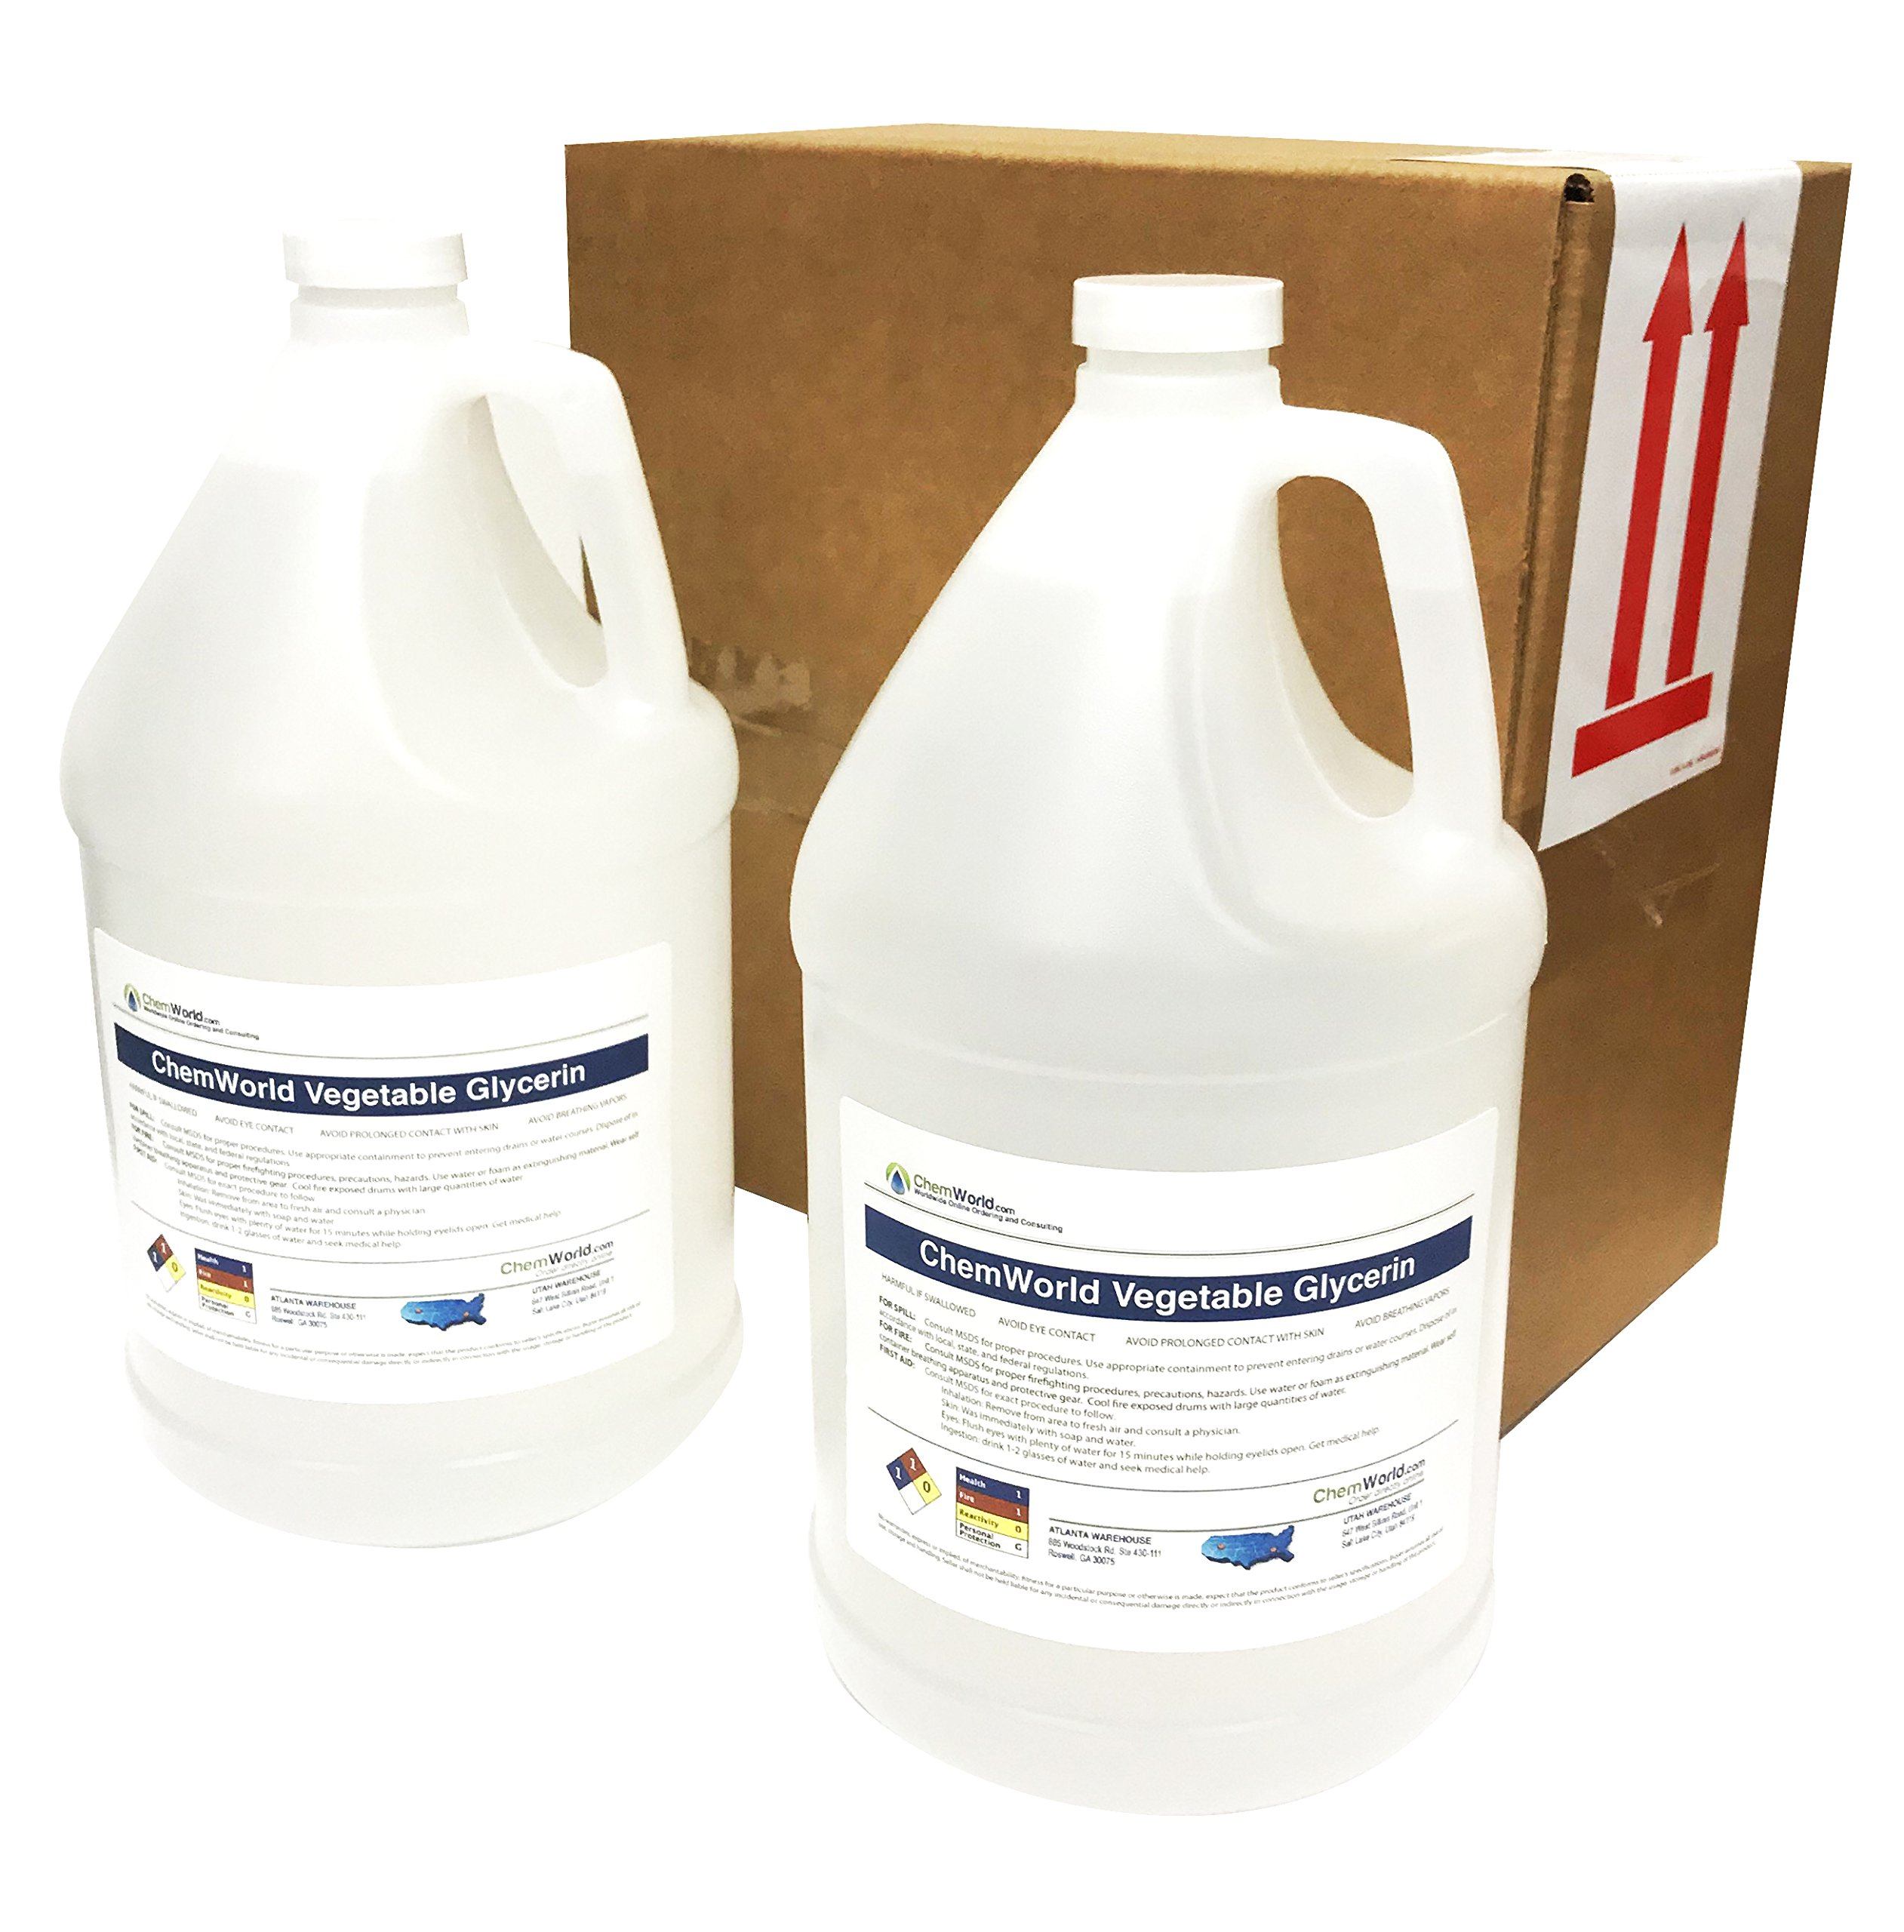 ChemWorld Vegetable Glycerin - 4x1 Gallons by ChemWorld (Image #1)